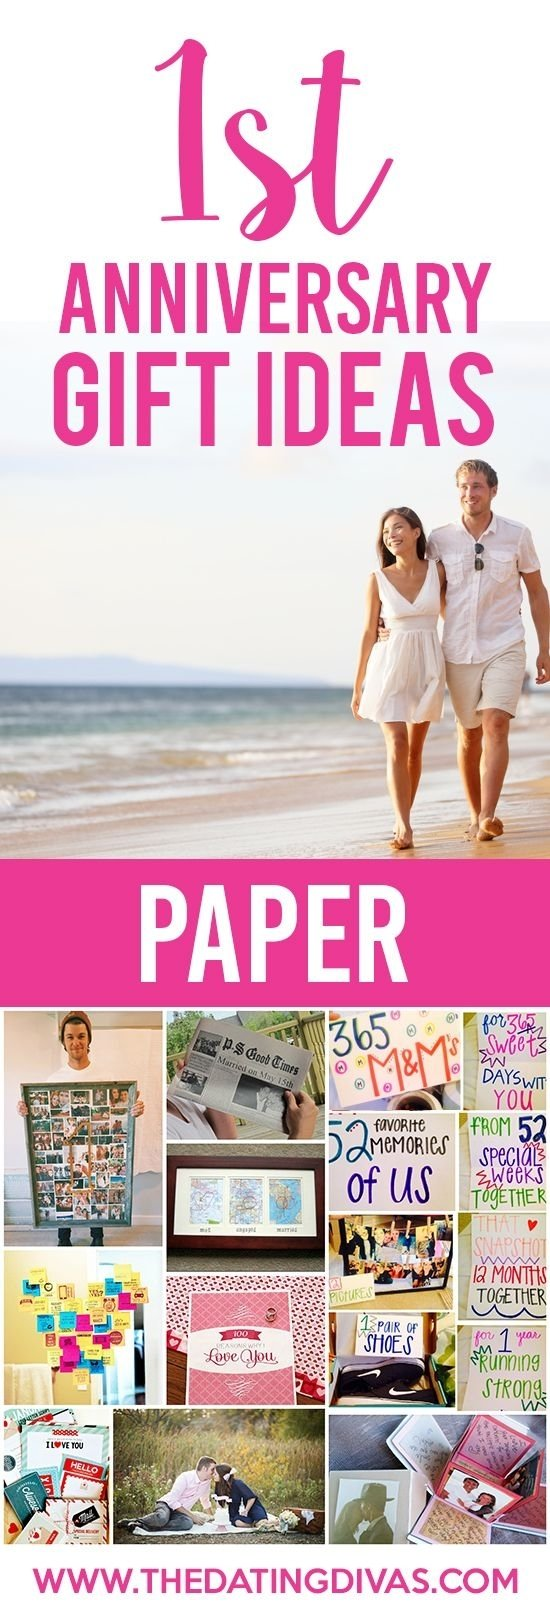 10 Fashionable One Year Anniversary Date Ideas best 1st wedding anniversary gifts ideas 35 unique paper presents